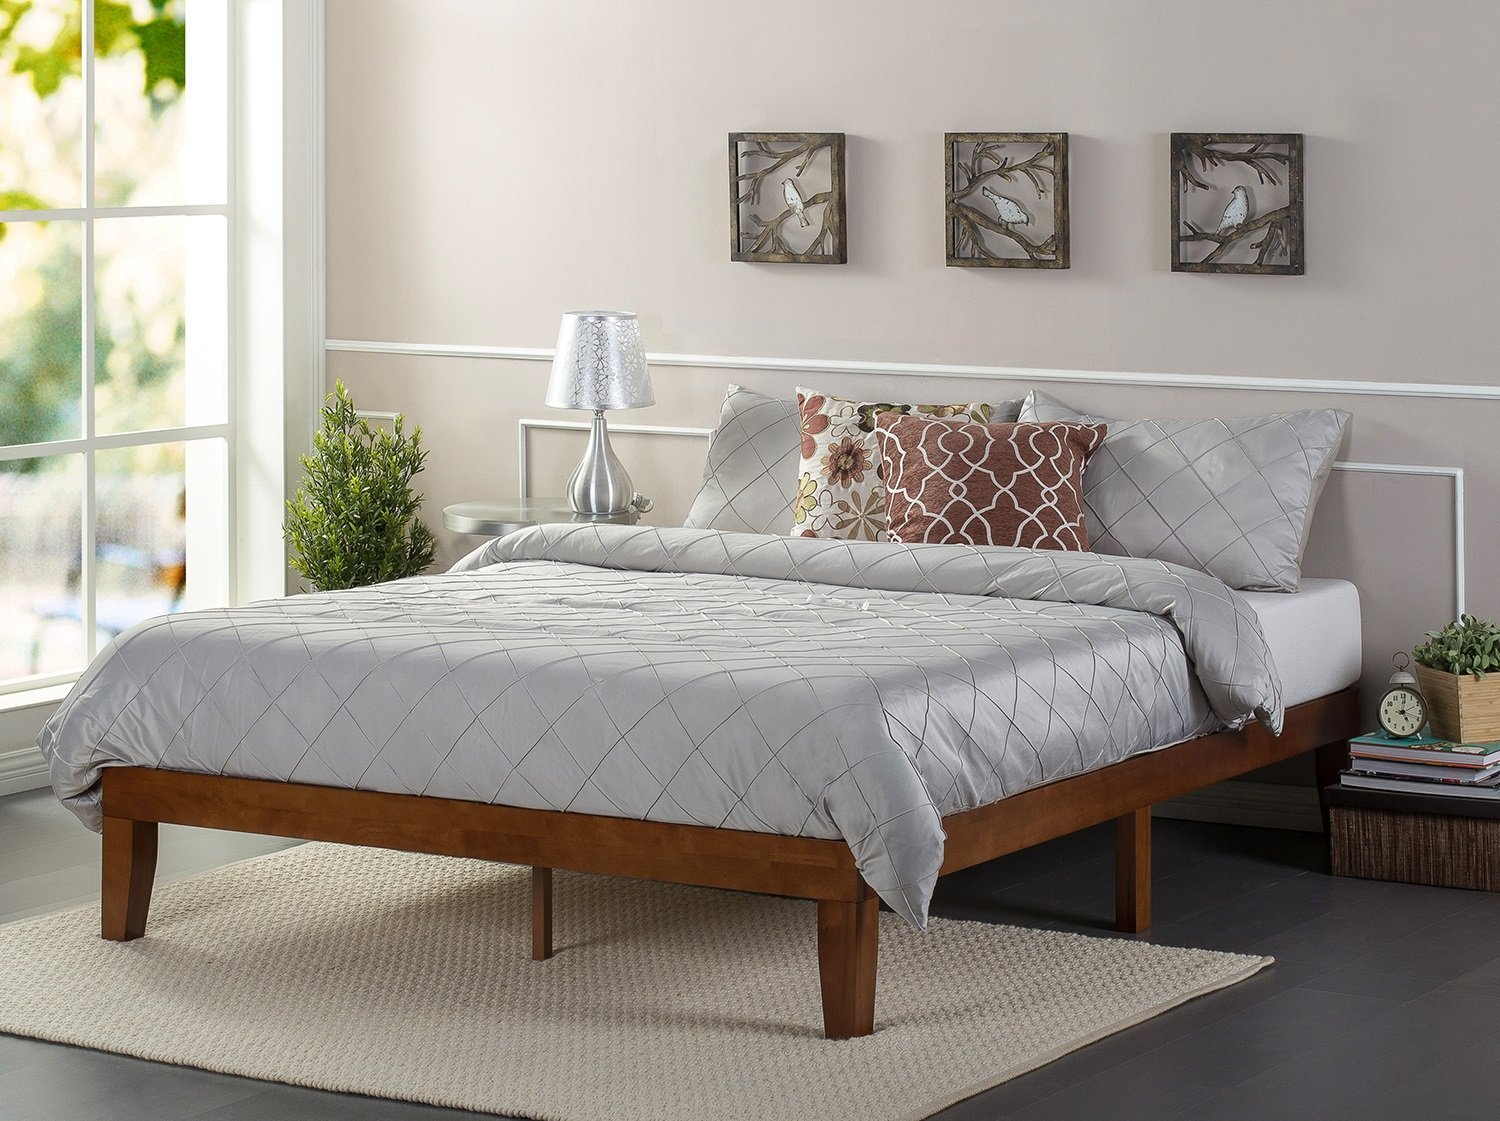 Zinus 12 Inch Wood Platform Bed / No Boxspring Needed / Wood Slat support / Cherry Finish, Queen by Zinus (Image #8)